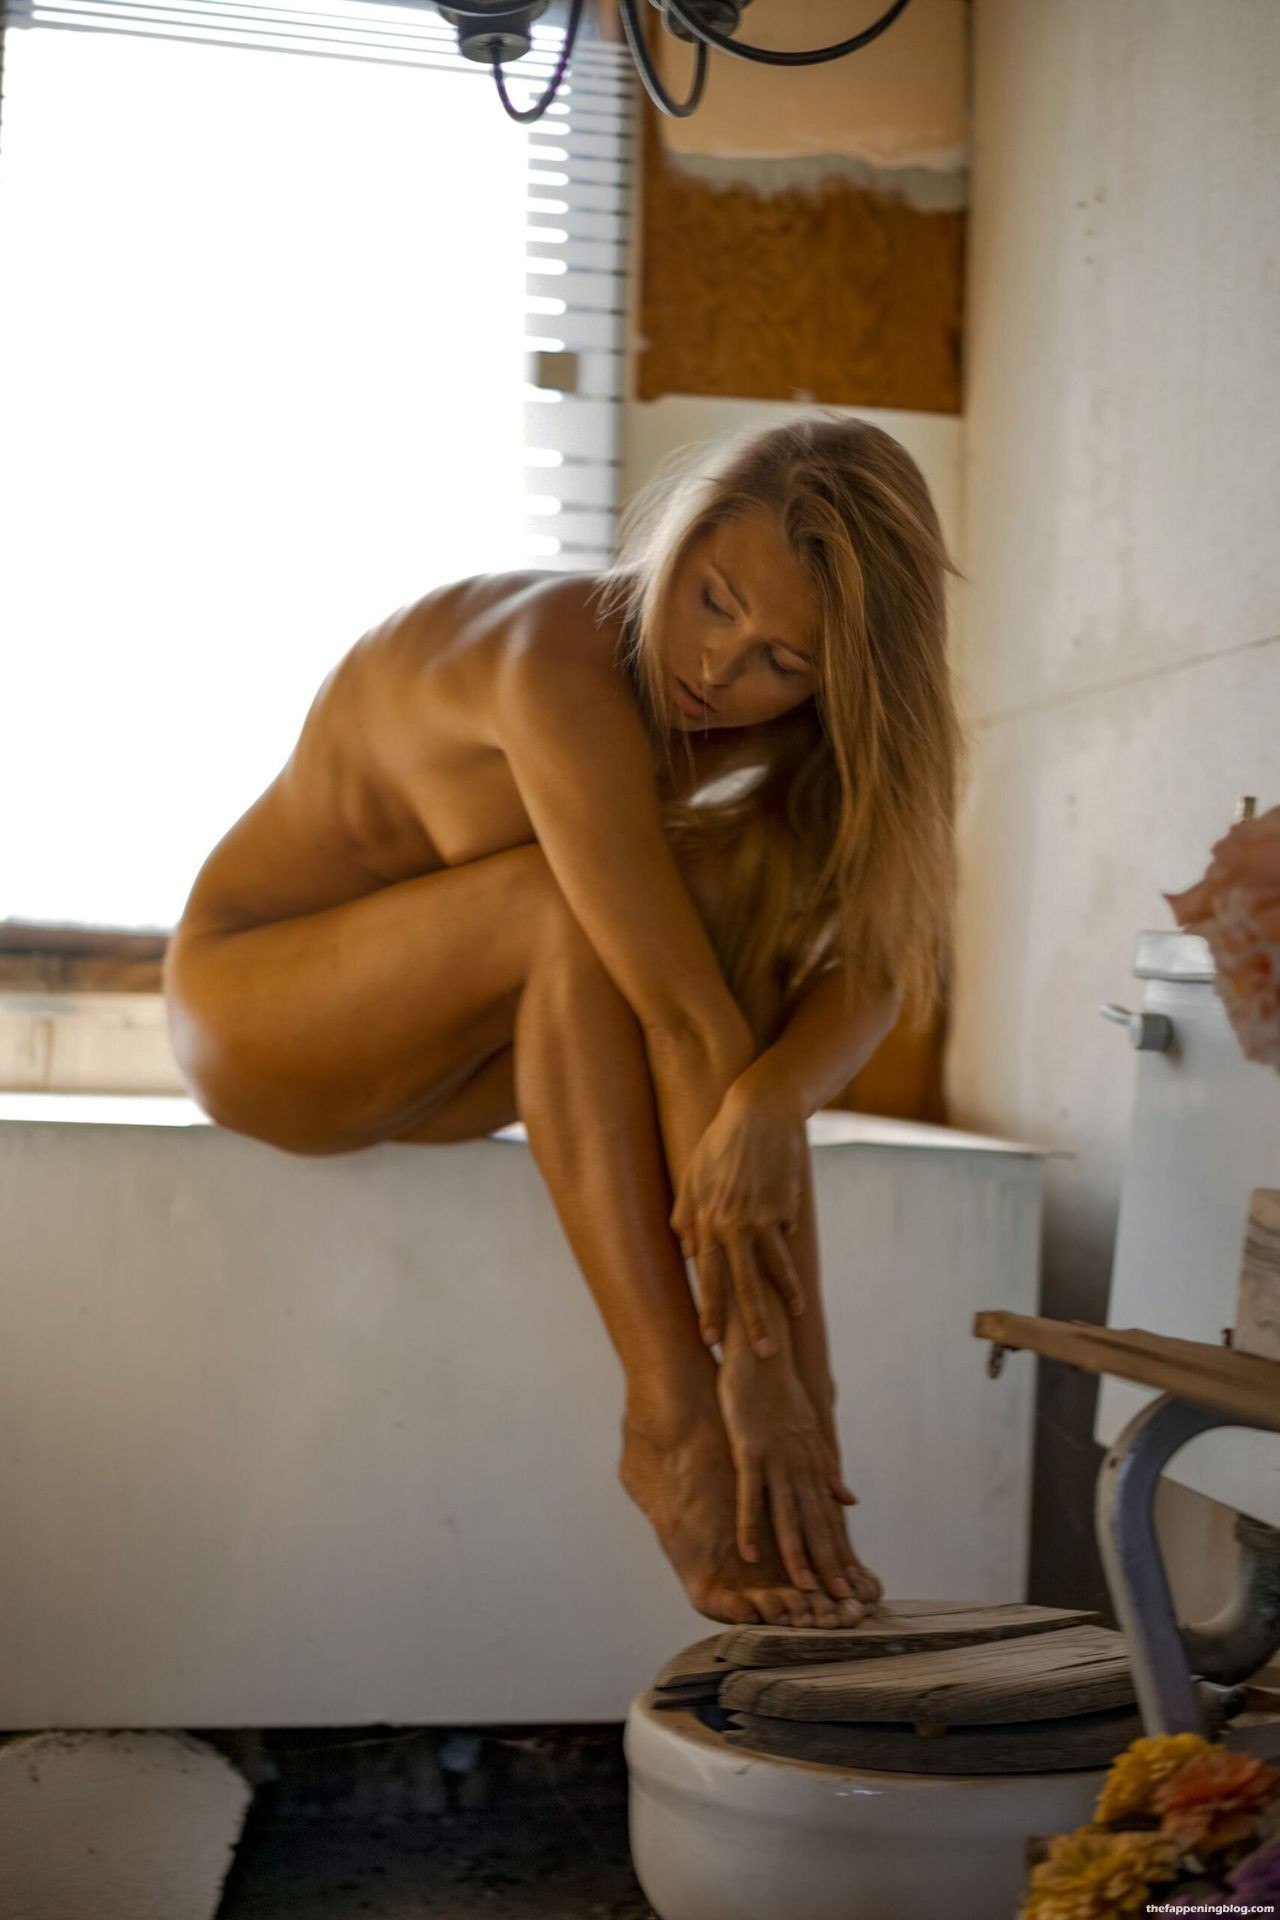 Marisa-Papen-Stunning-Naked-Body-7-scaled1-thefappeningblog.com_.jpg